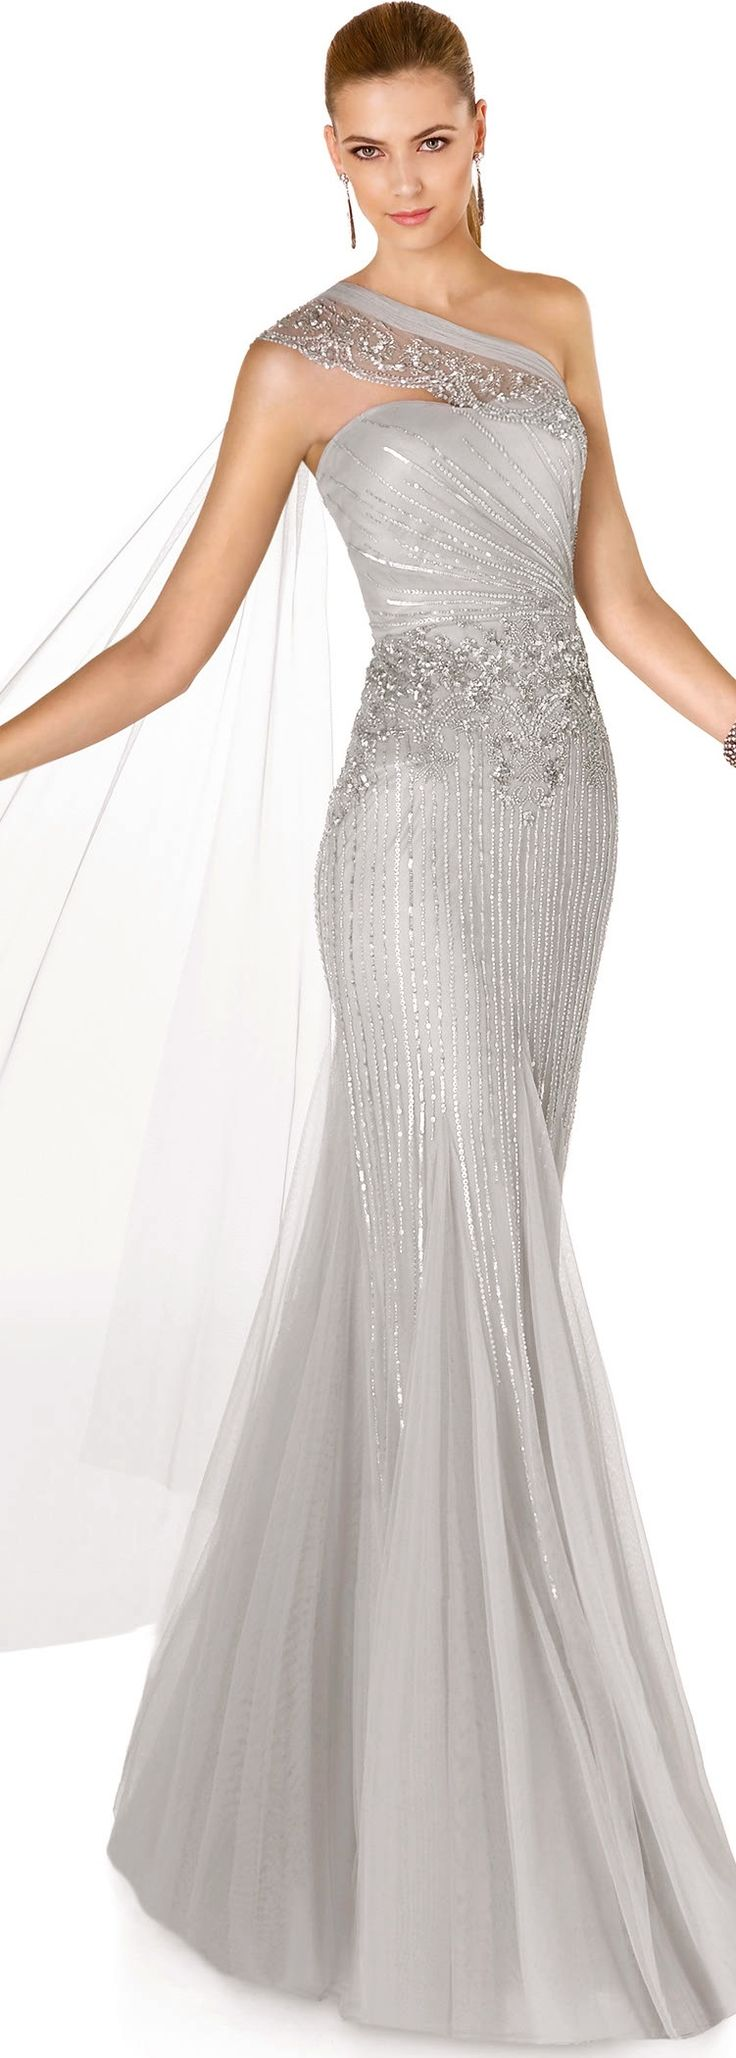 Wedding Silver Dresses 17 best ideas about silver gown on pinterest dress grey beautiful one shoulder eveningdress styleinspiration theamandaferrishowroom